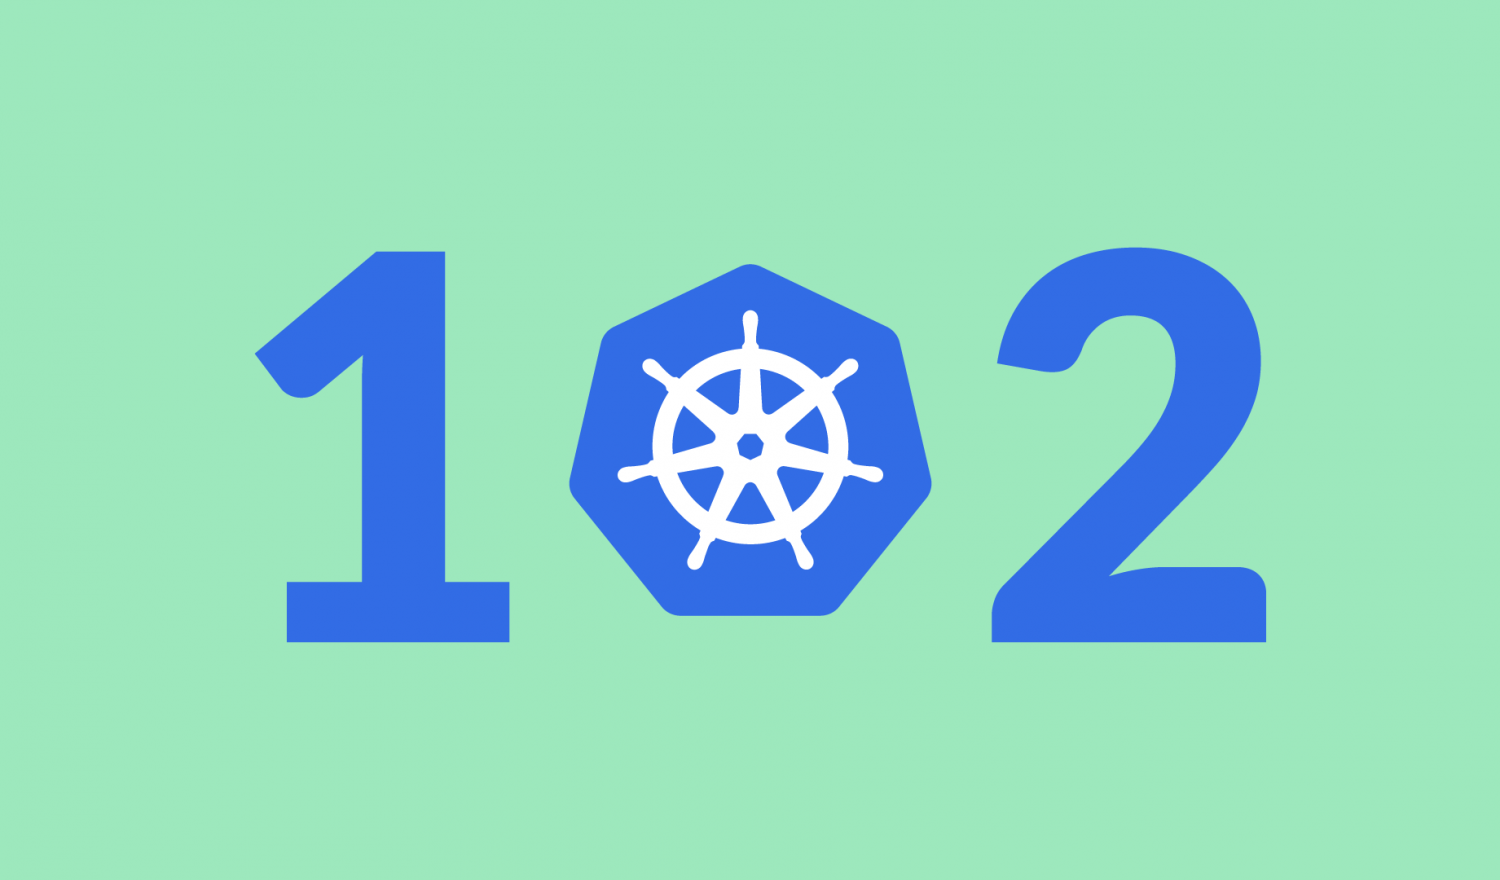 Kubernetes Networking 102 with the Kubernetes Logo as the 0